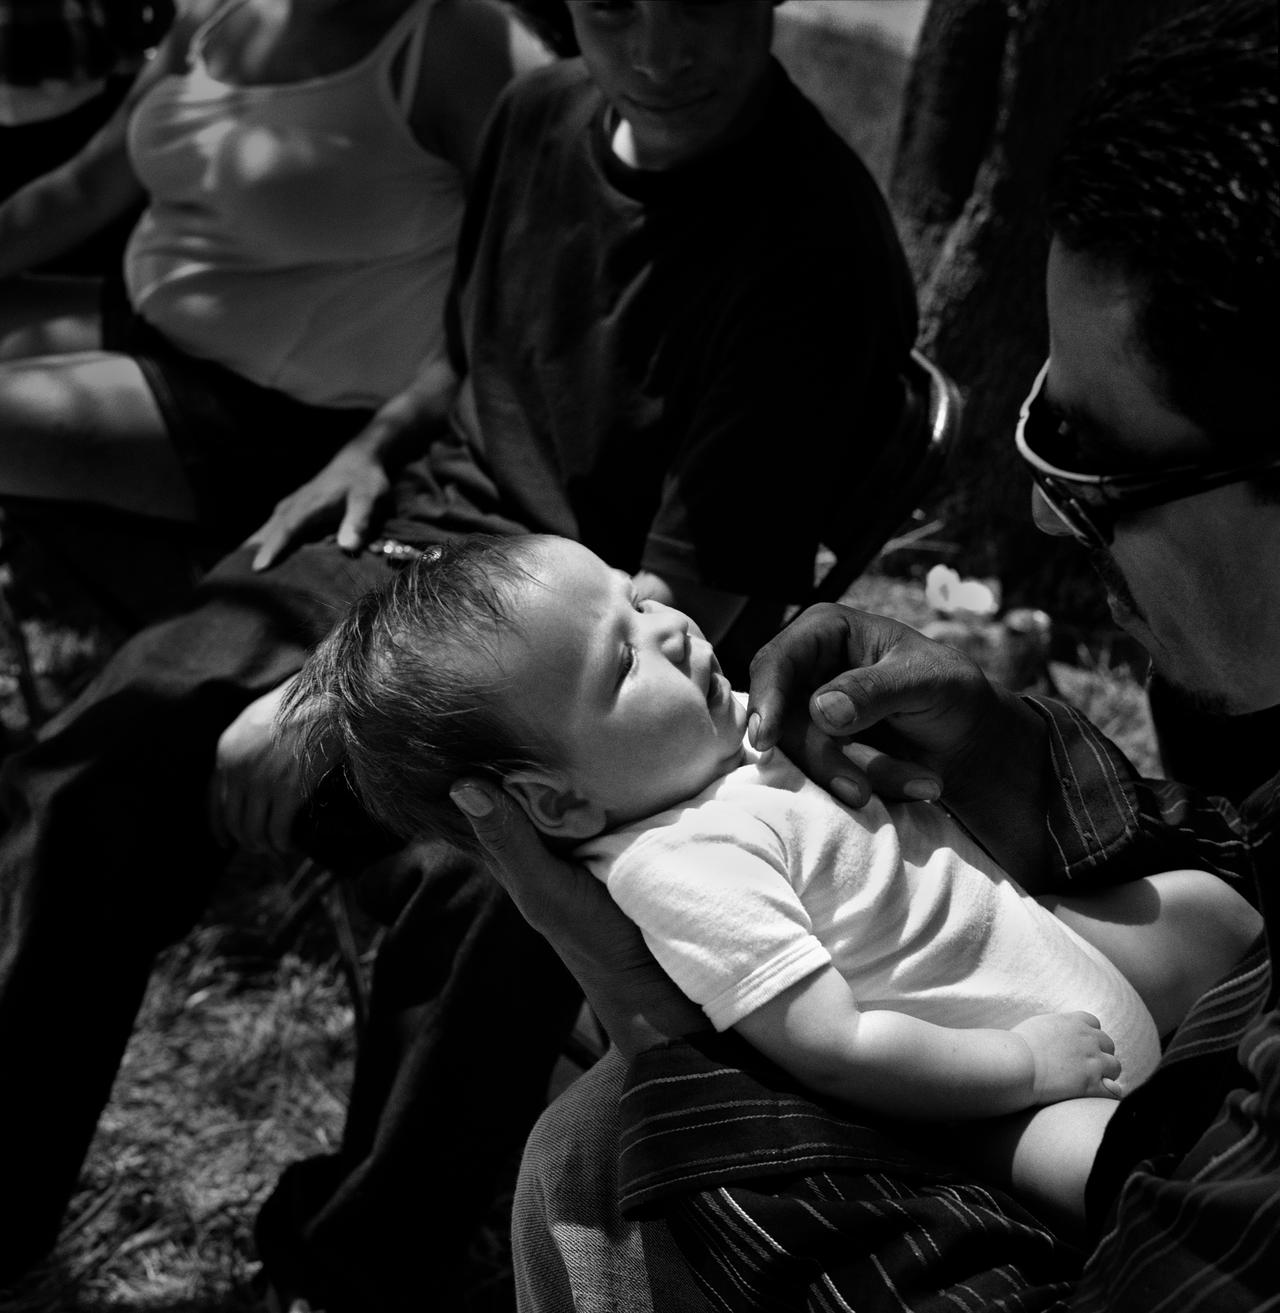 The Sanchez family holds their newborn brother at a Walden House picnic in Los Angeles, California. Their mother, Yvette, has just had her baby in prison. The Sanchezes said they hoped for the family to grow stronger once Yvette is off parole.